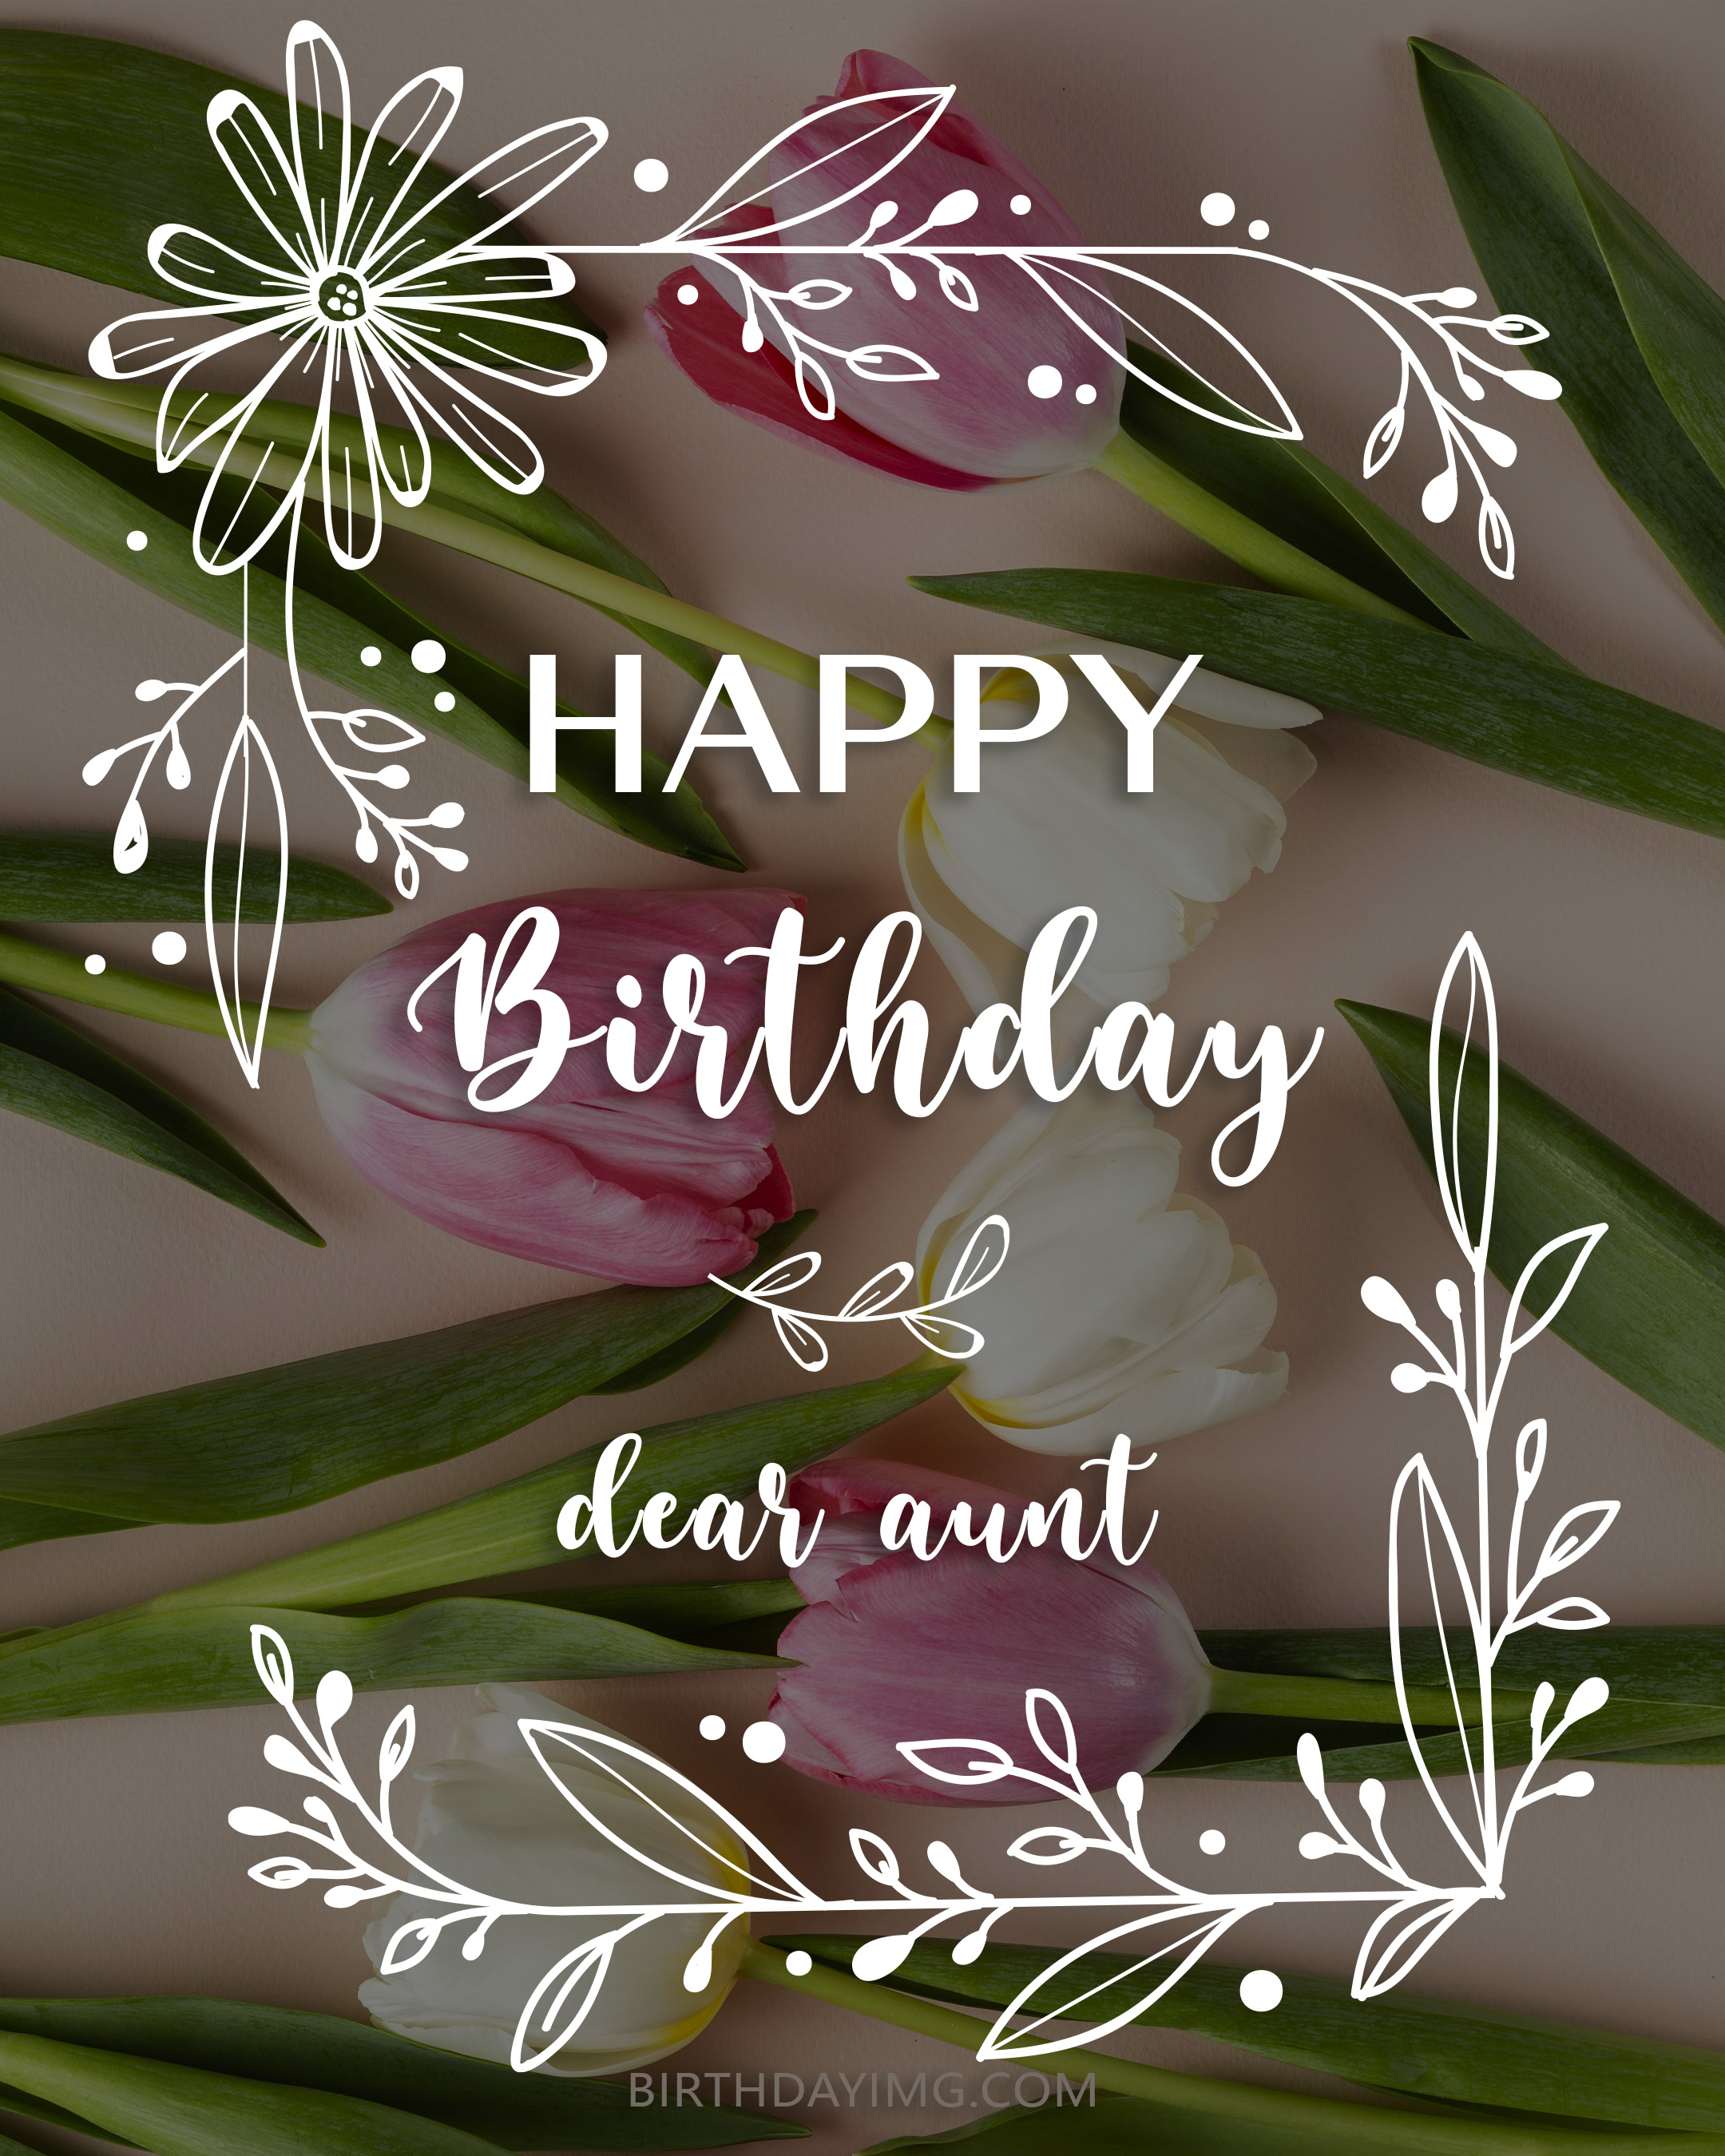 Free Happy Birthday Image For Aunt With Tulips - birthdayimg.com